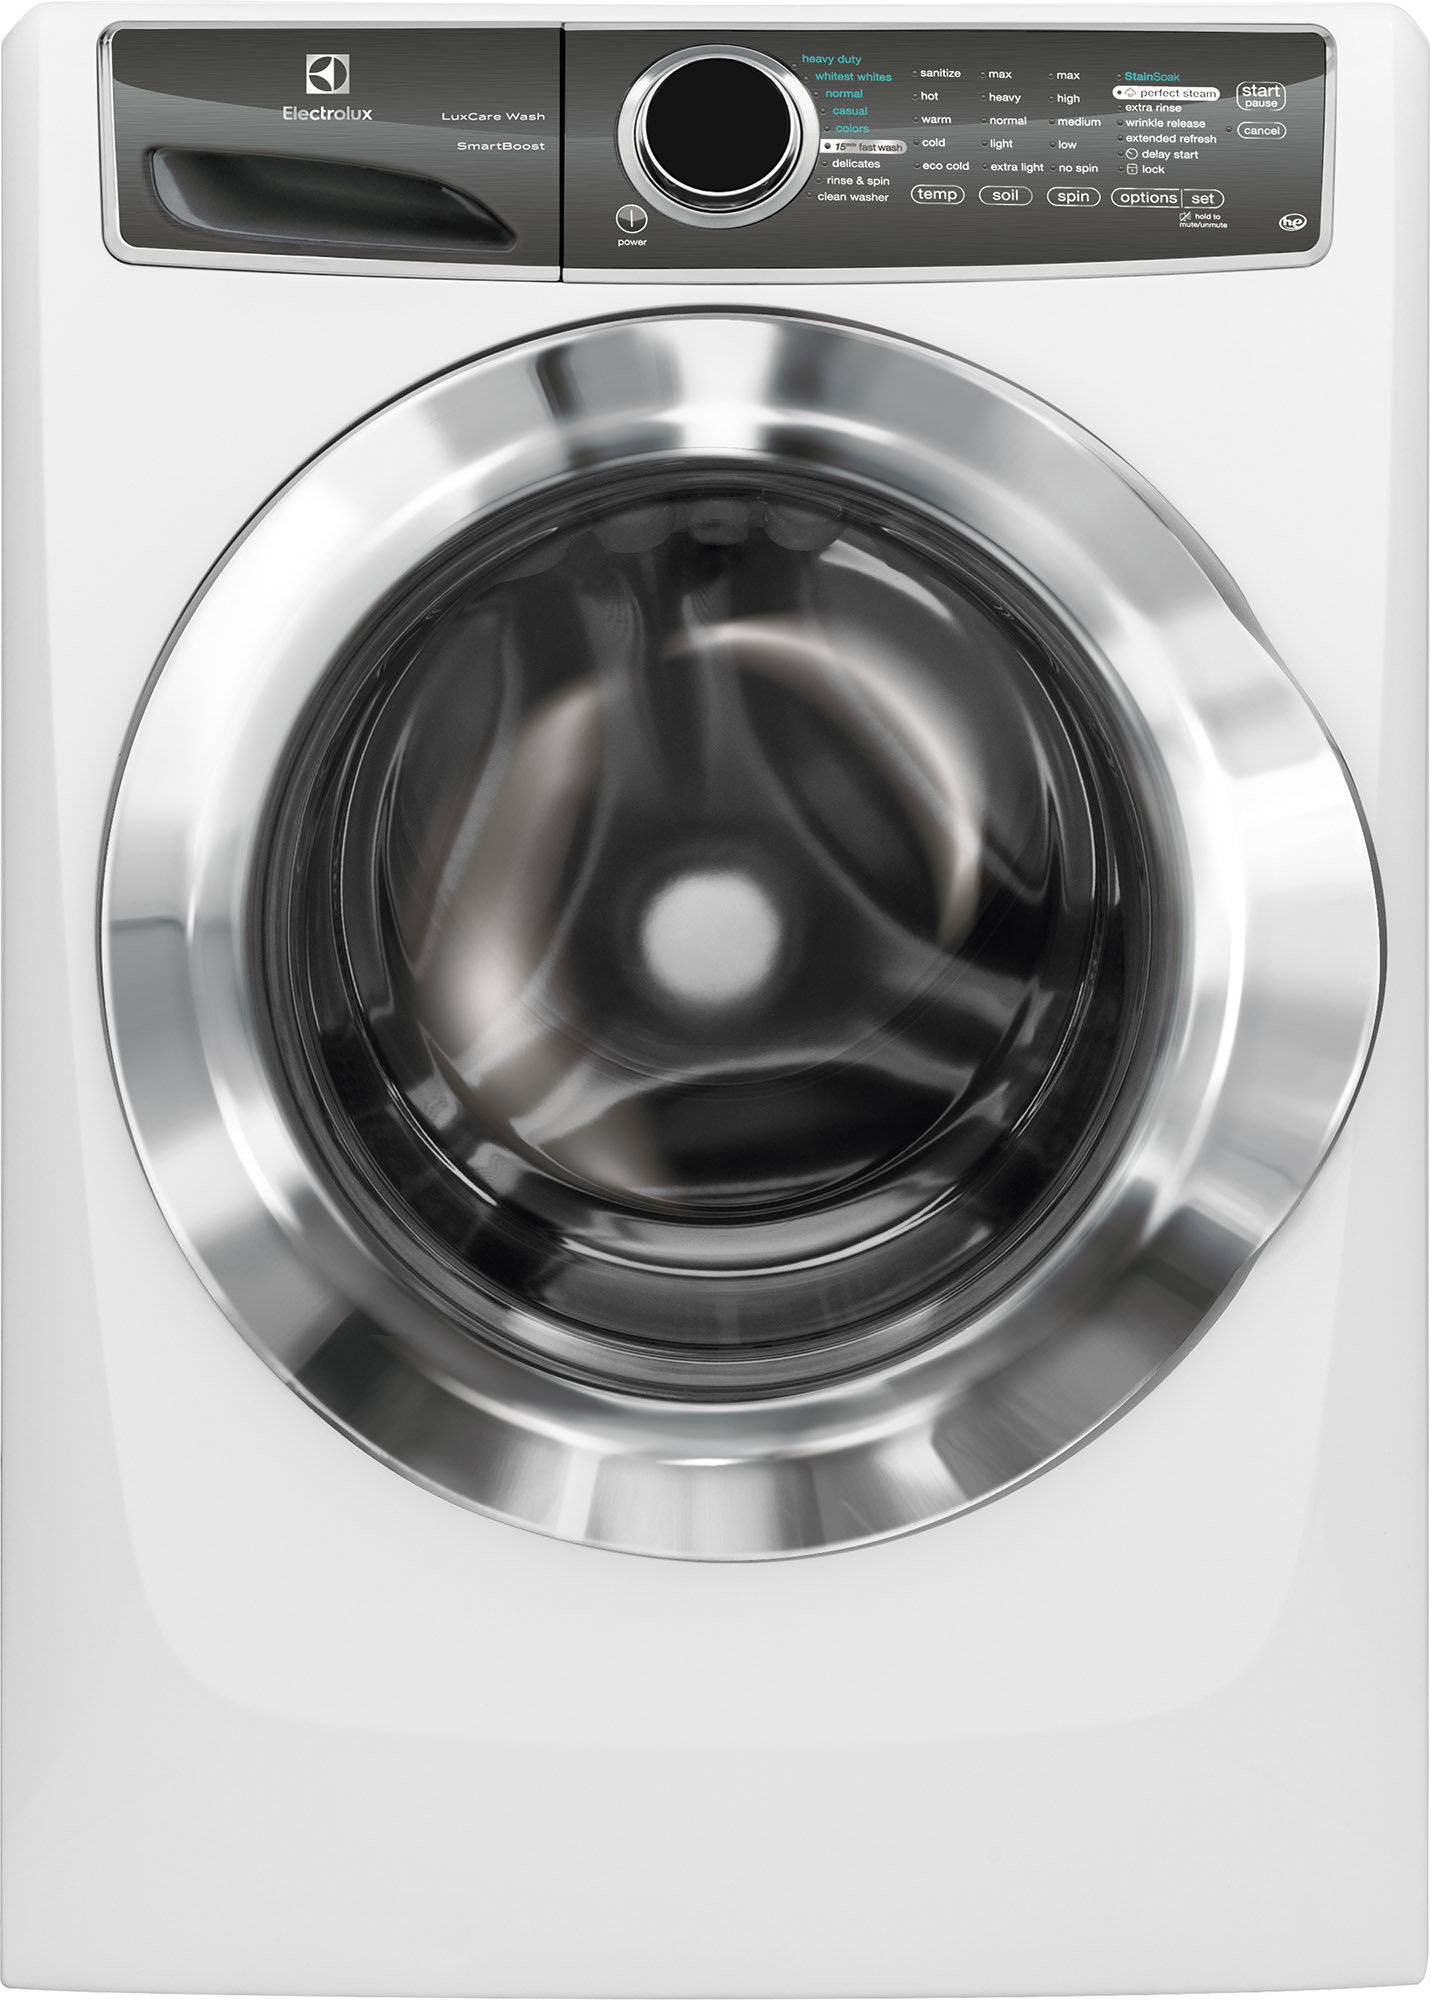 the efls617siw combines some of the best design elements that electrolux has come up with over